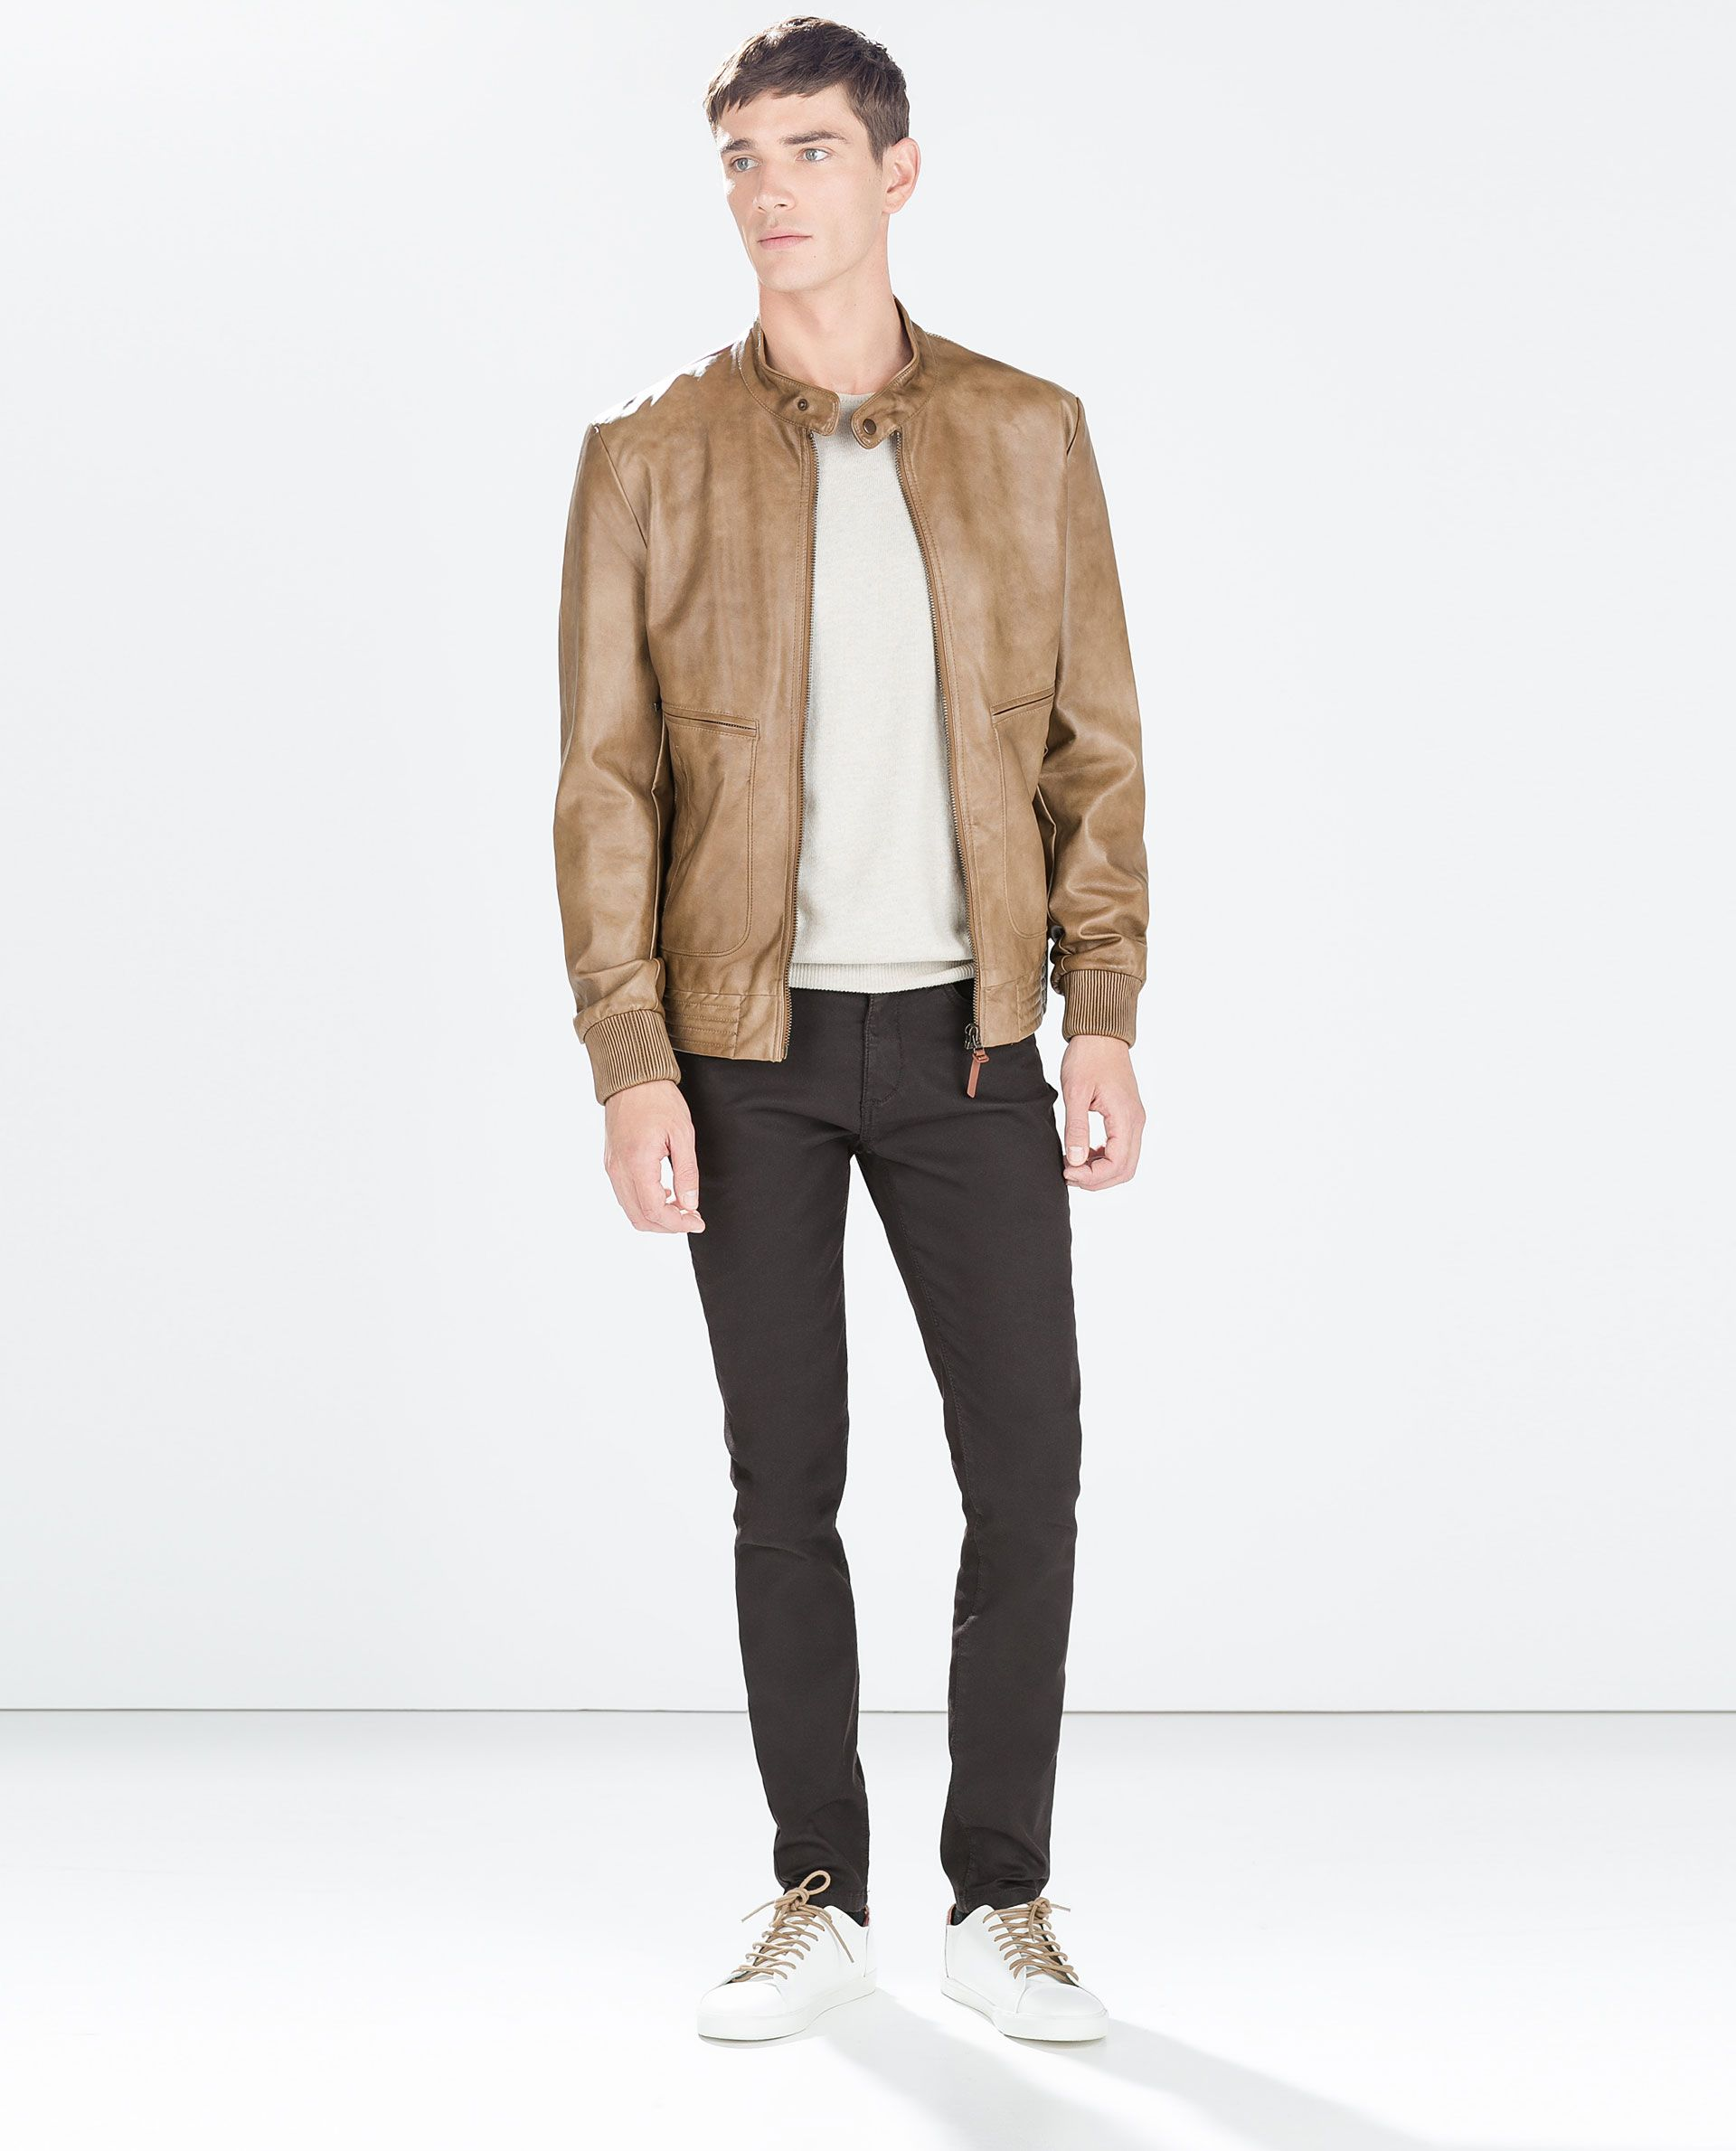 FAUX LEATHER JACKET from Zara AW 2014 Autumn/Spring